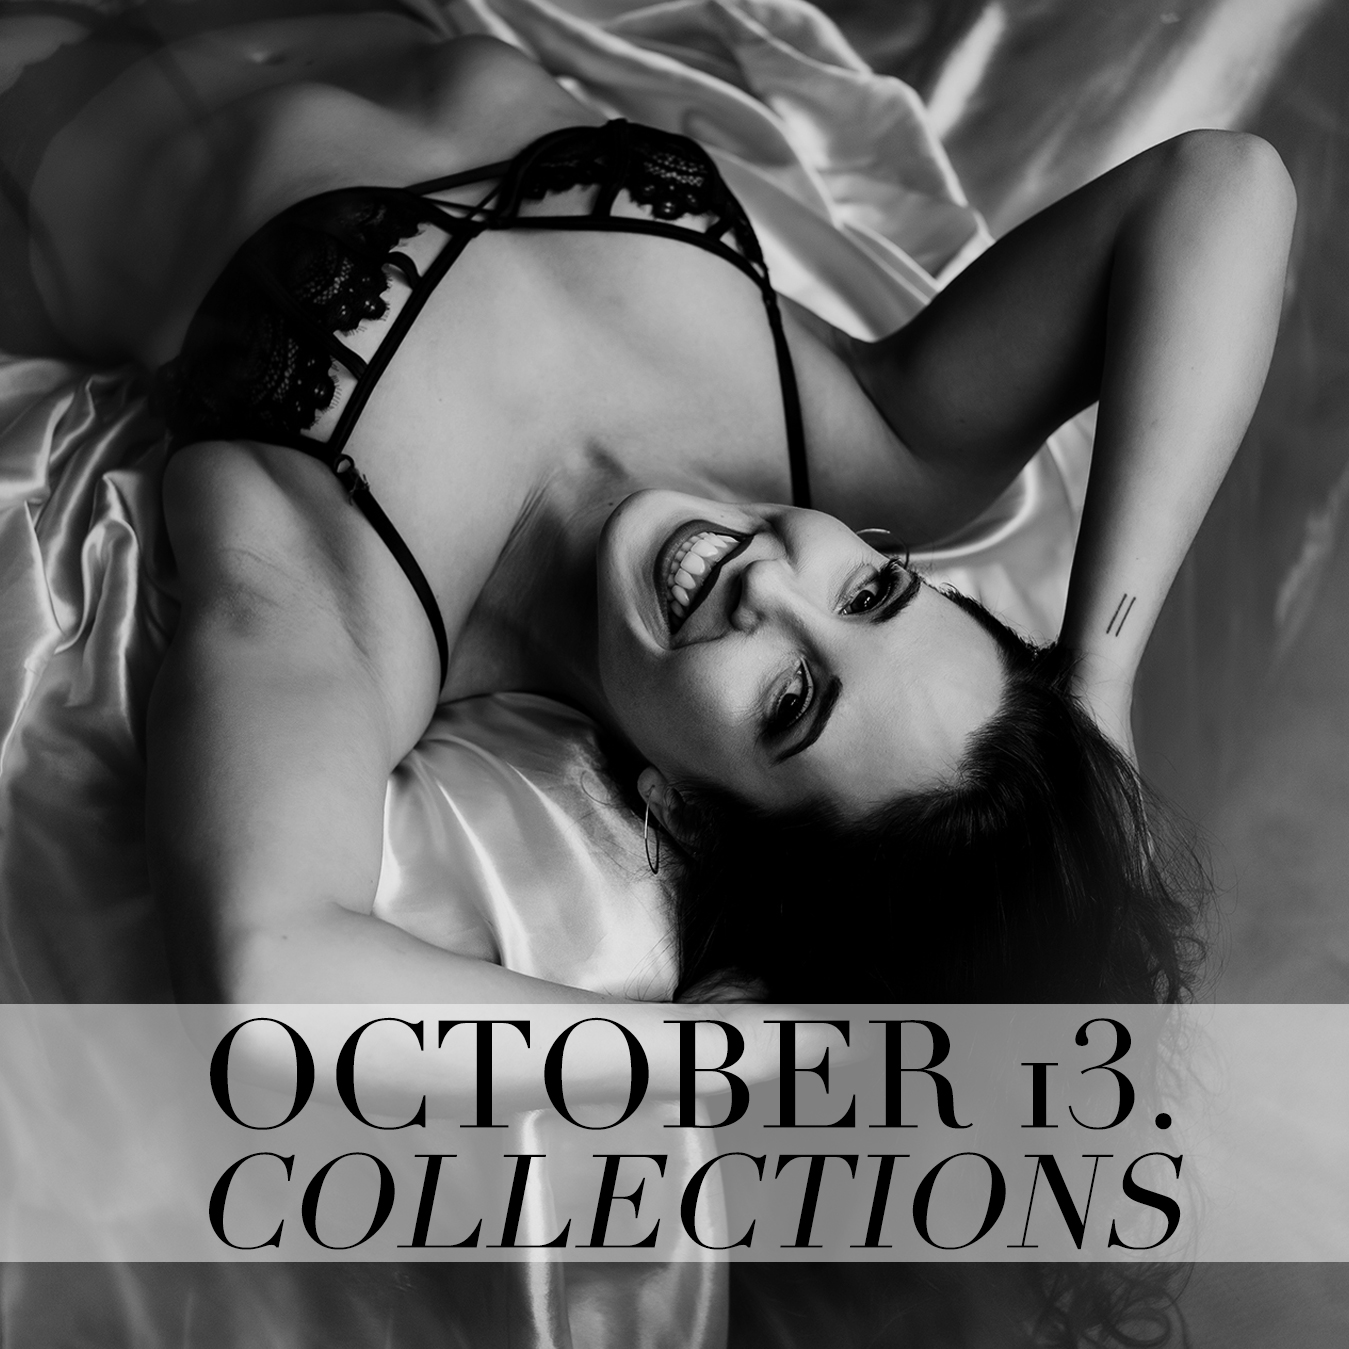 October-13-collections.jpg